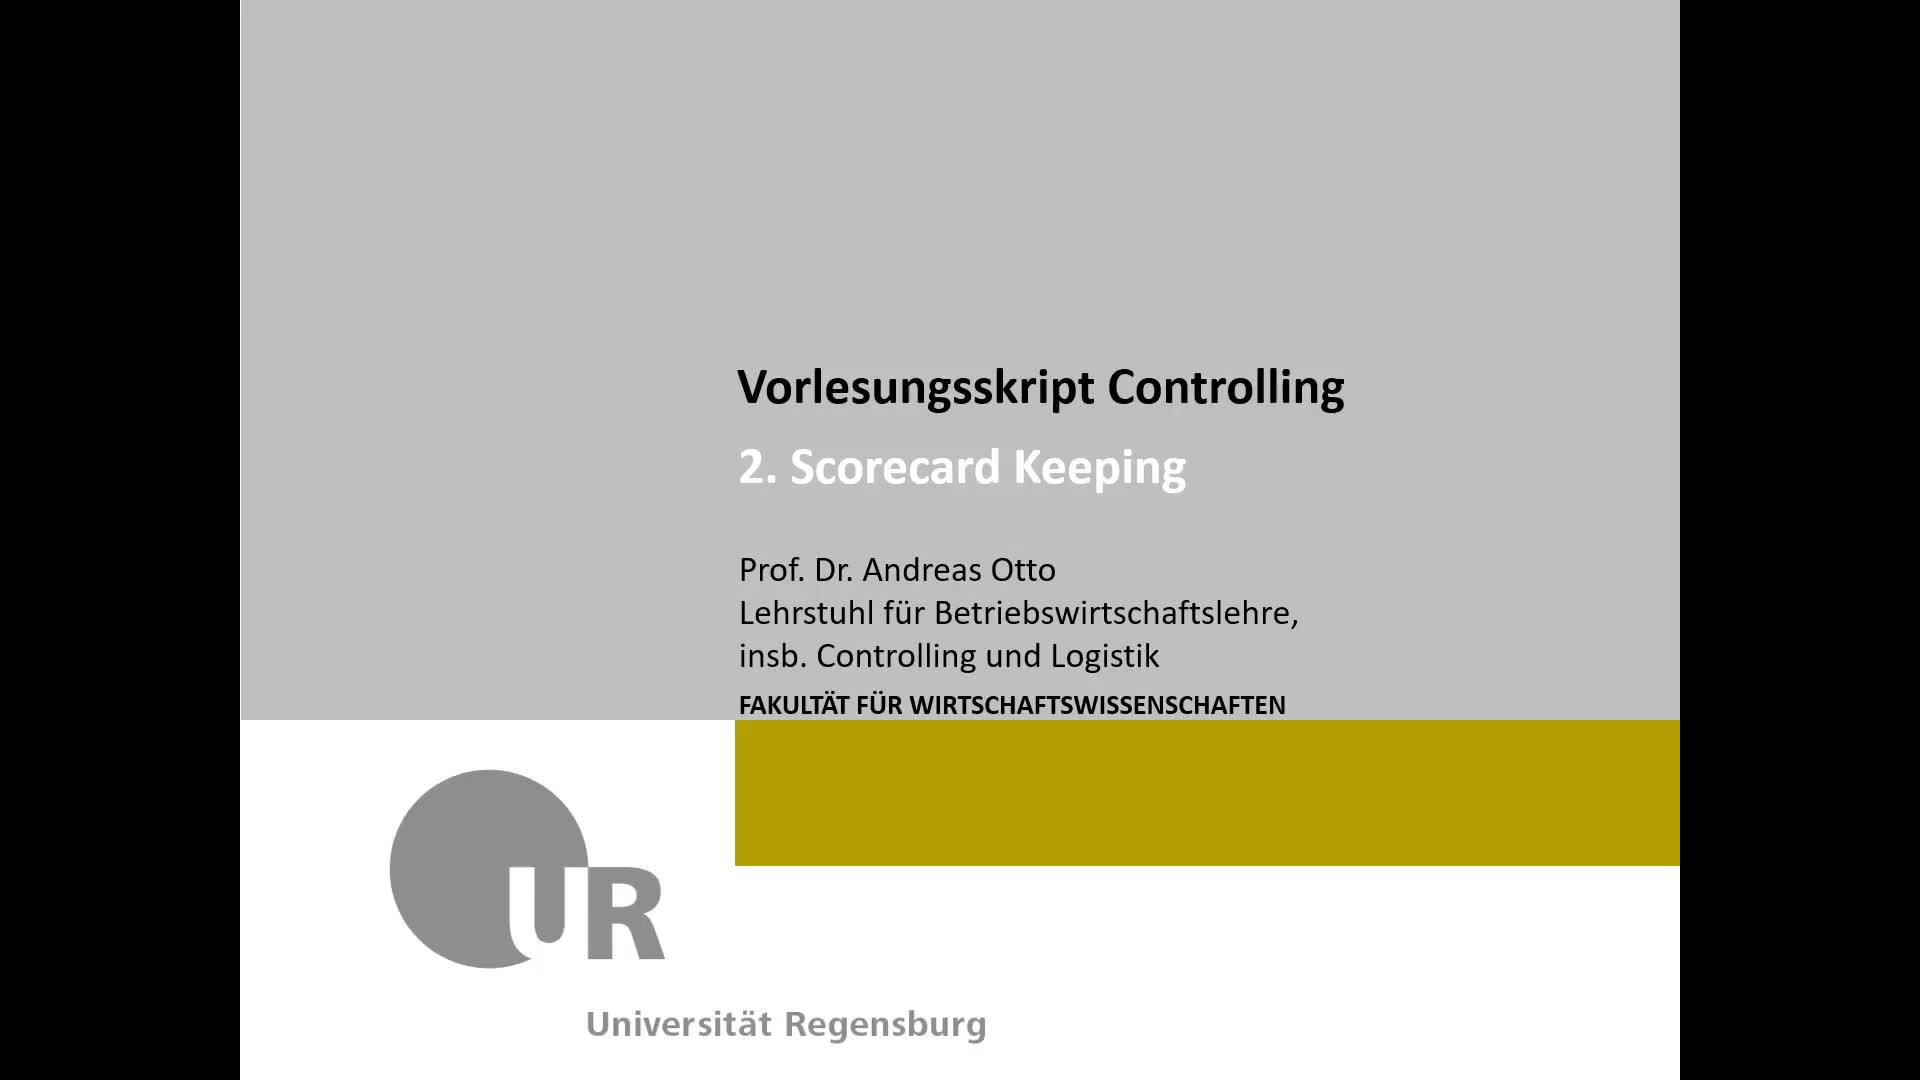 Controlling VL II - Scorecard Keeping